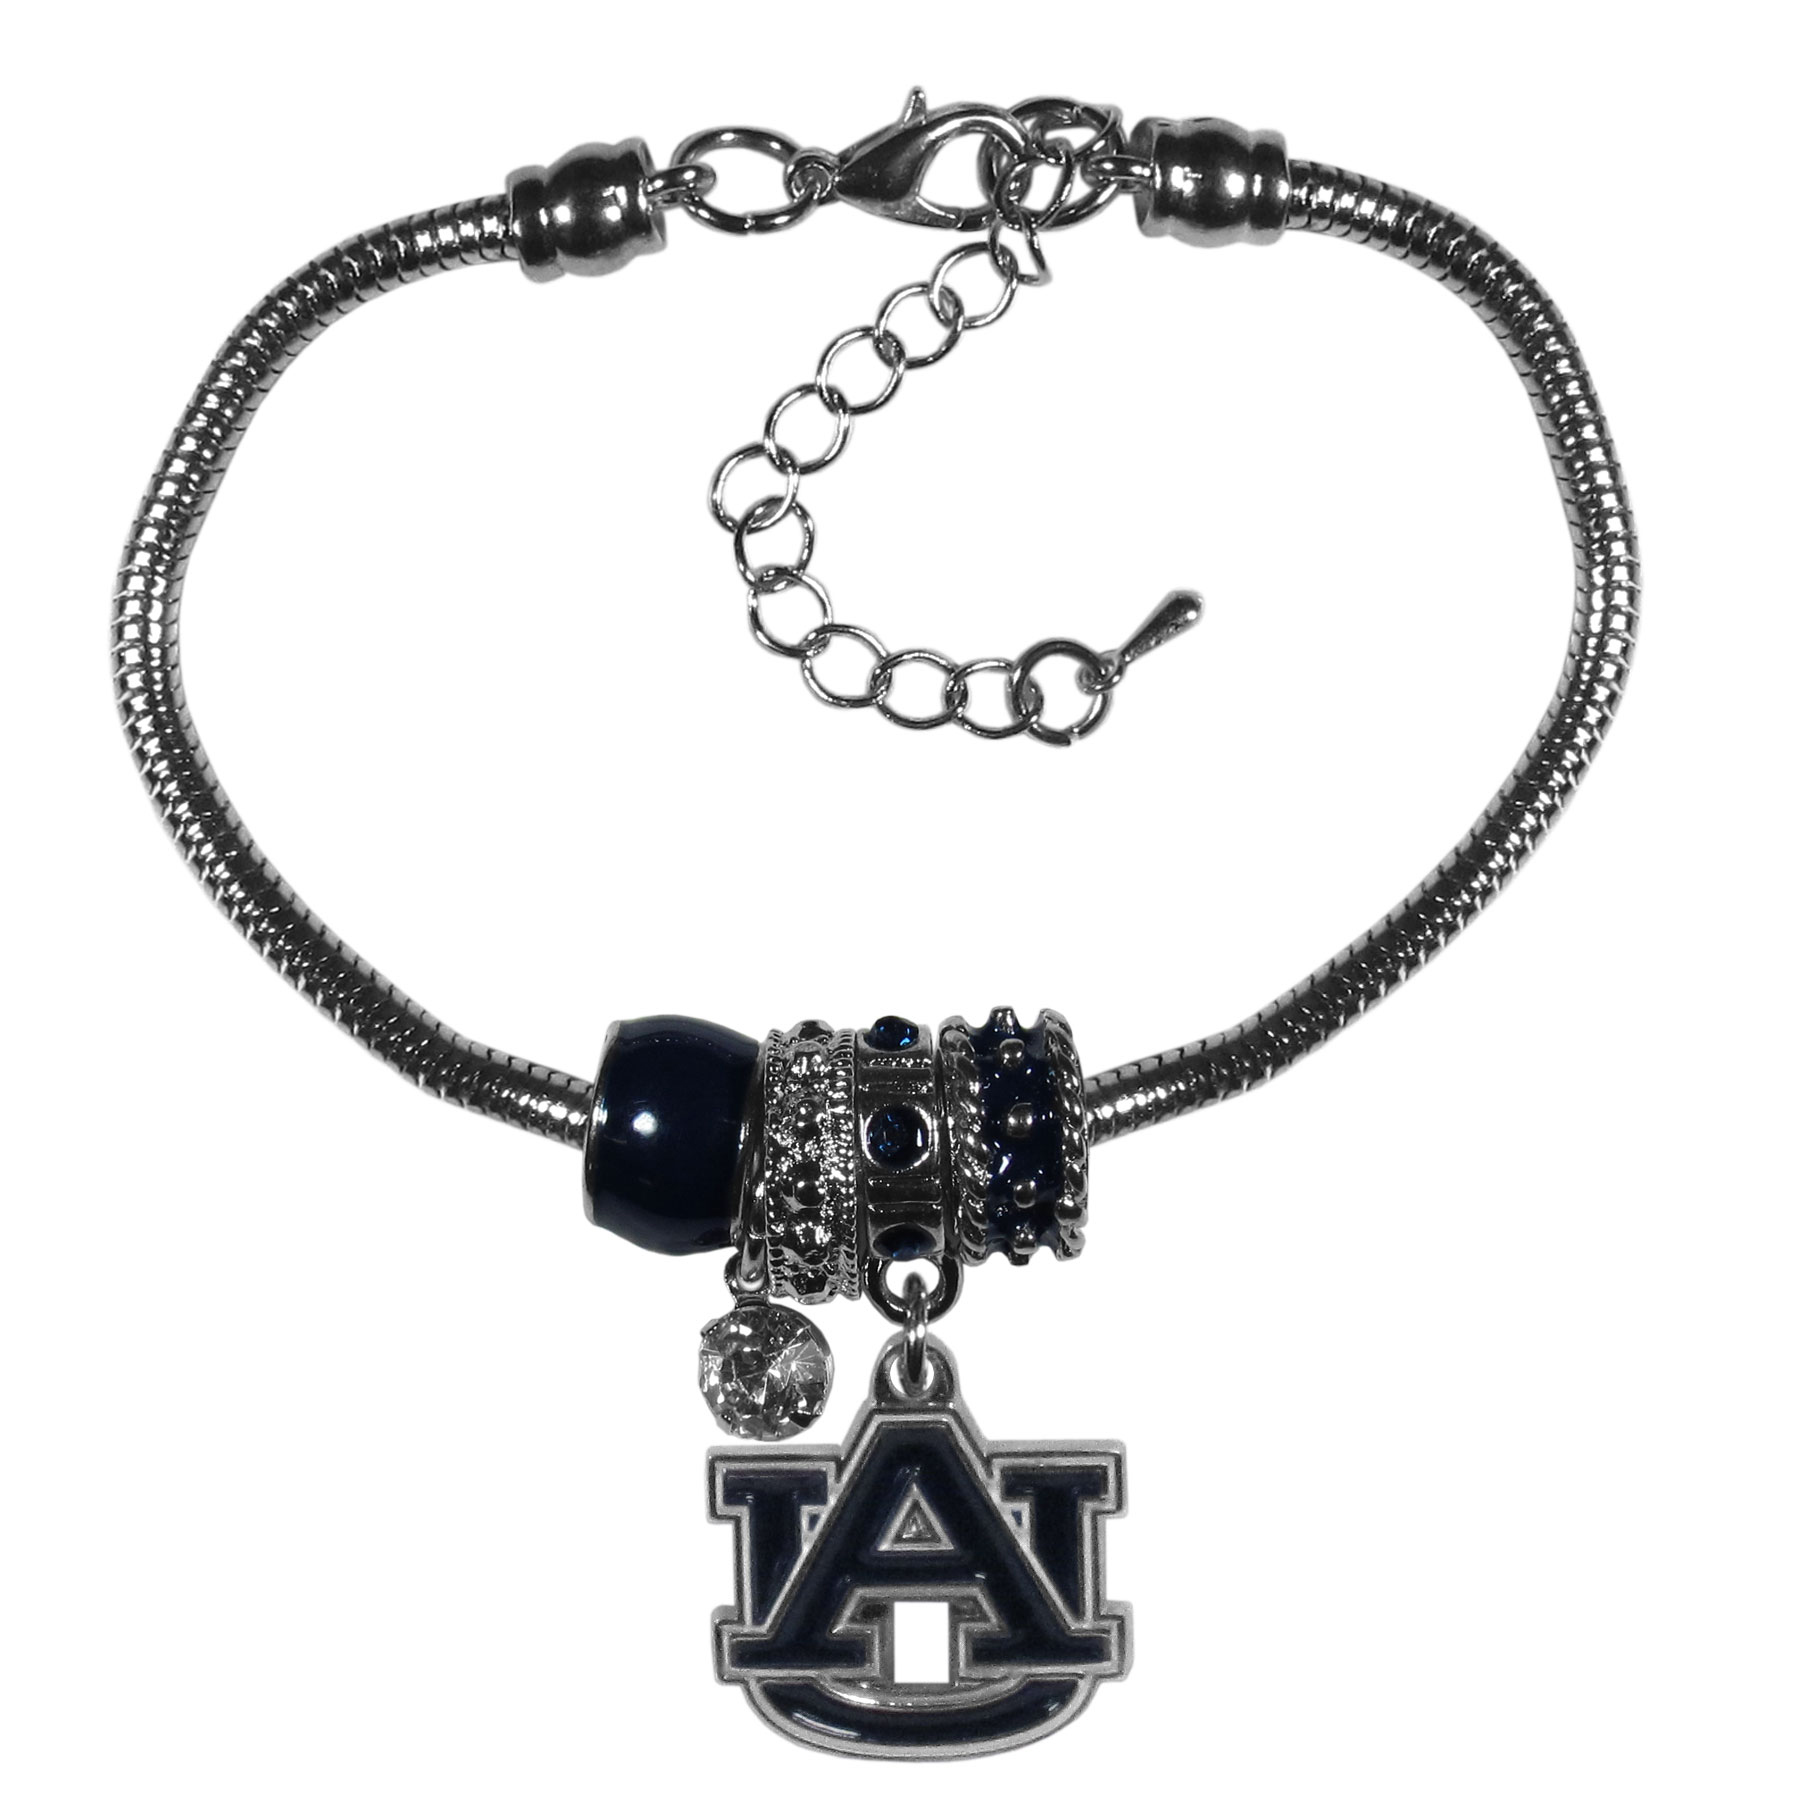 Auburn Tigers Euro Bead Bracelet - We have combined the wildly popular Euro style beads with your favorite team to create our  Auburn Tigers bead bracelet. The 7.5 inch snake chain with 2 inch extender features 4 Euro beads with enameled team colors and rhinestone accents with a high polish, nickel free charm and rhinestone charm. Perfect way to show off your team pride.